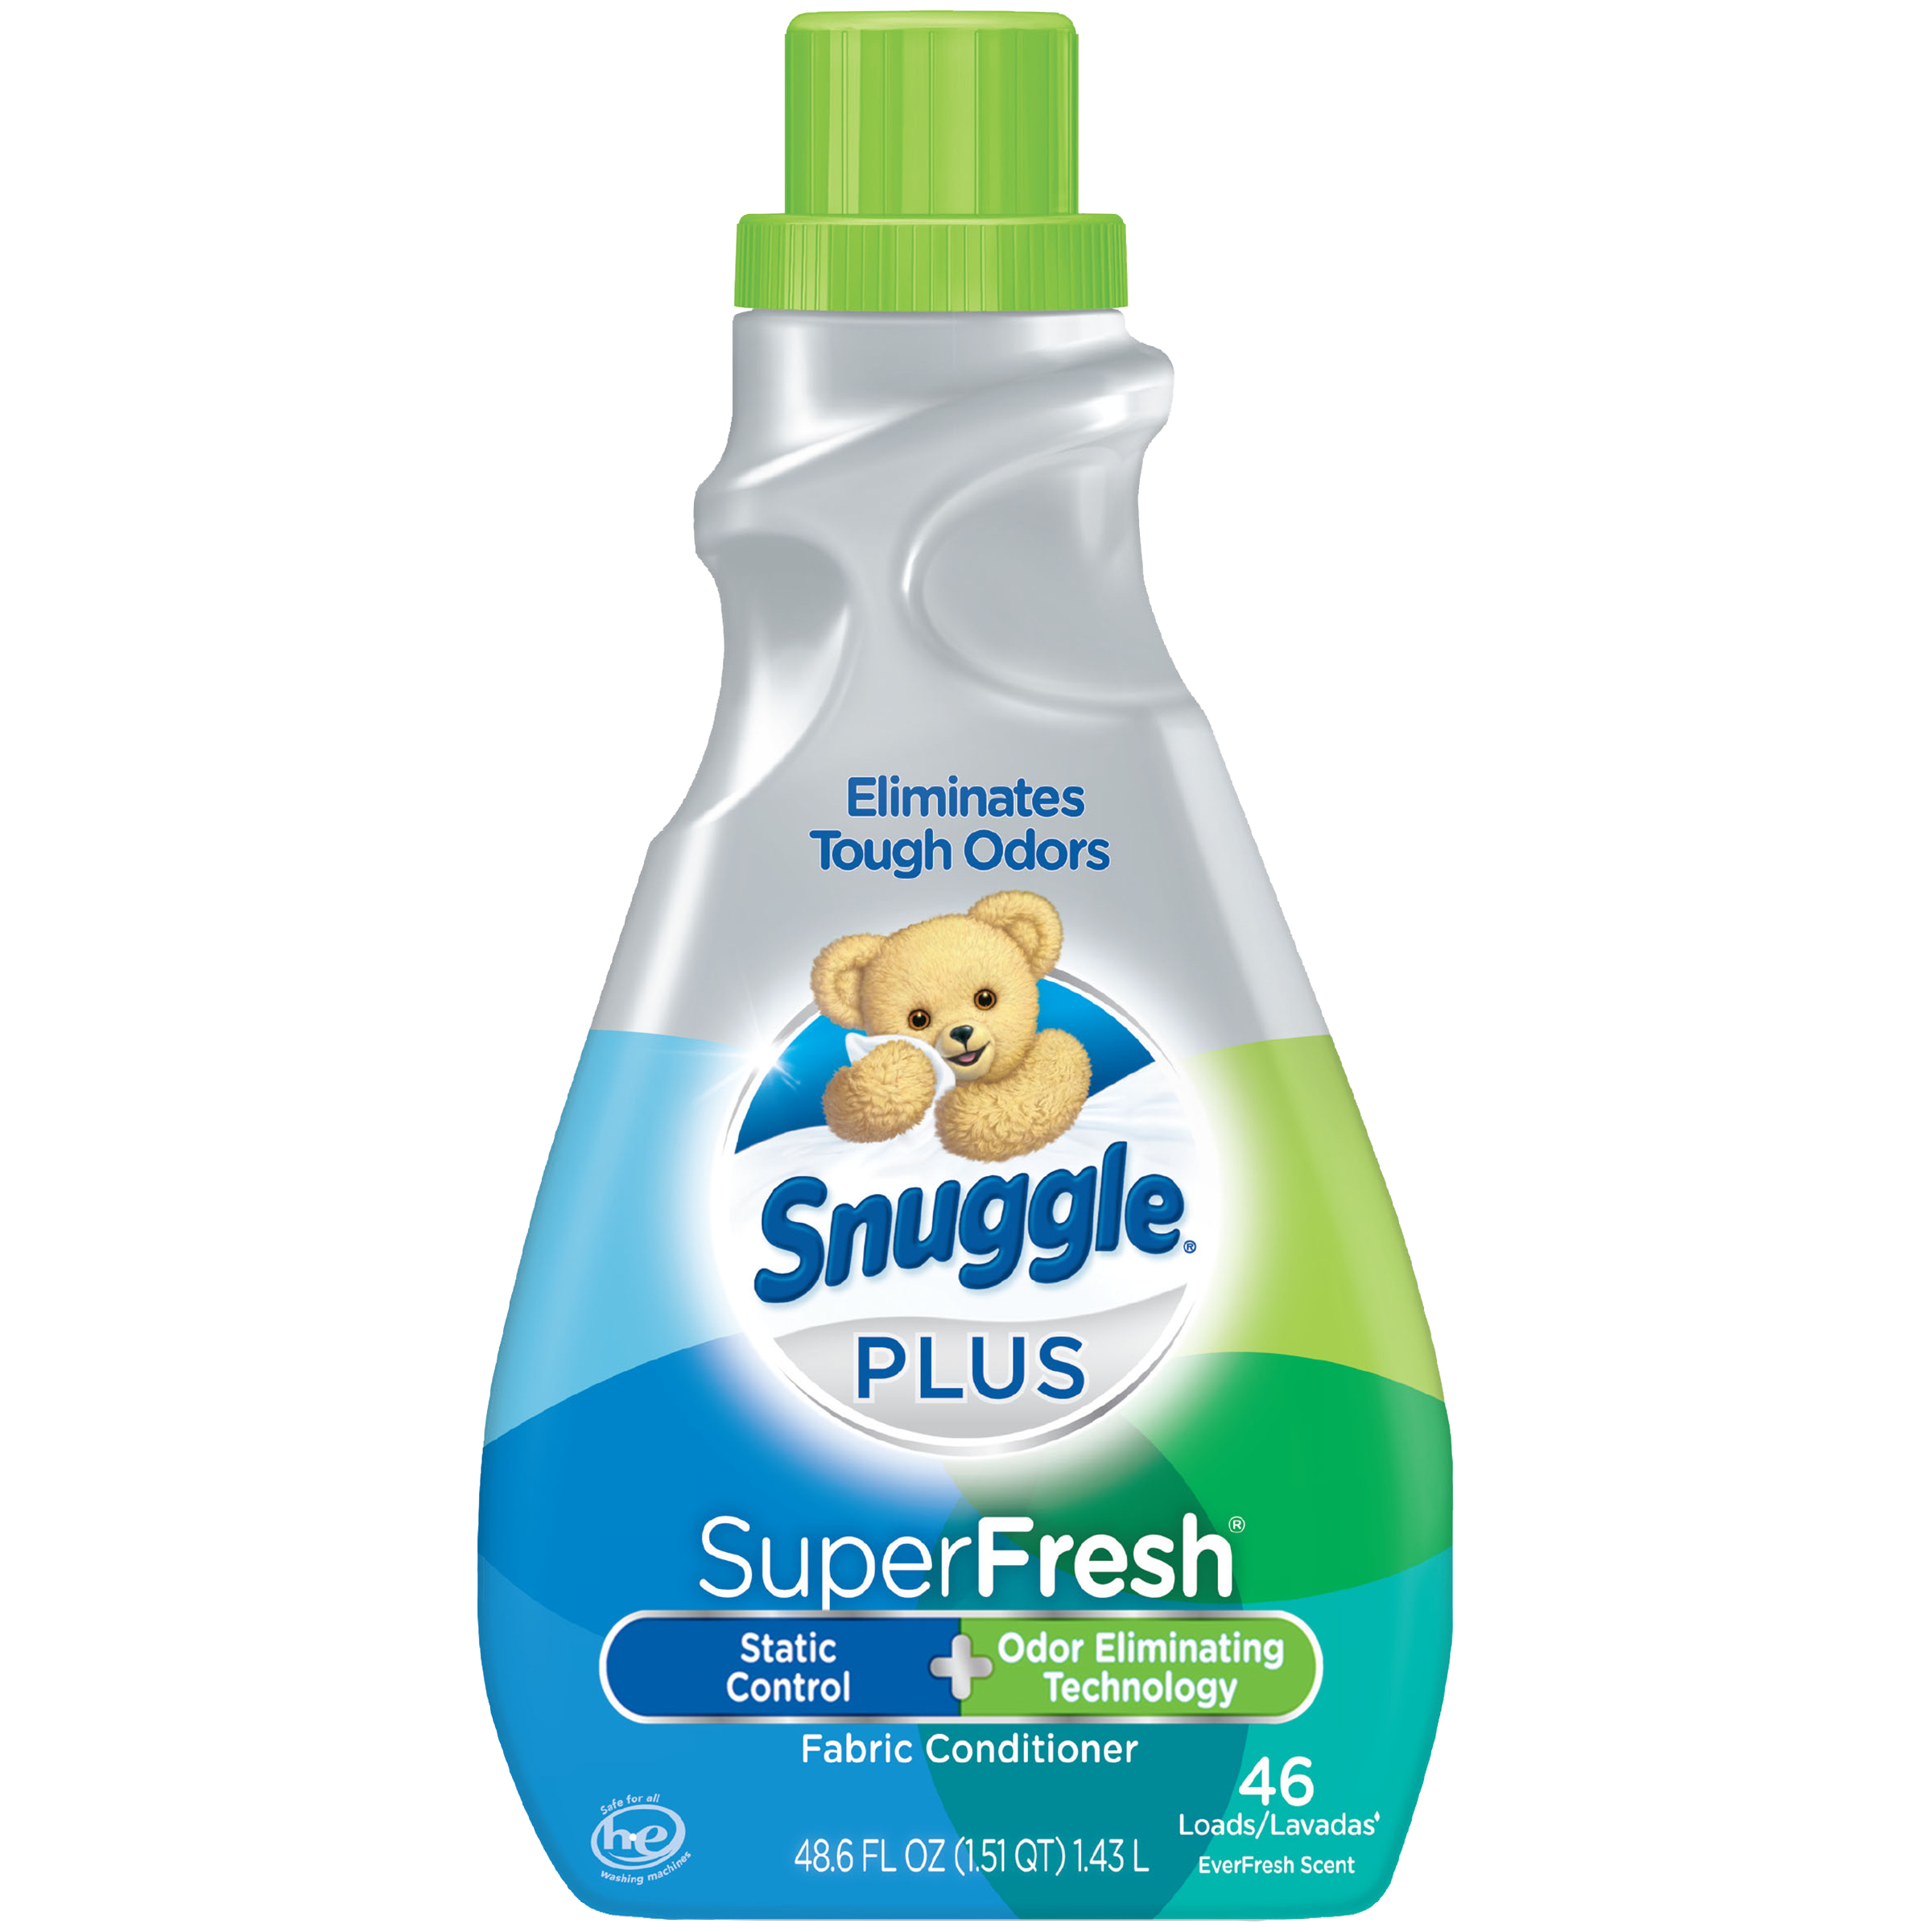 Snuggle Plus Super Fresh Liquid Fabric Softener with Odor Eliminating Technology, Original, 48.6 Fluid Ounces, 46 Loads